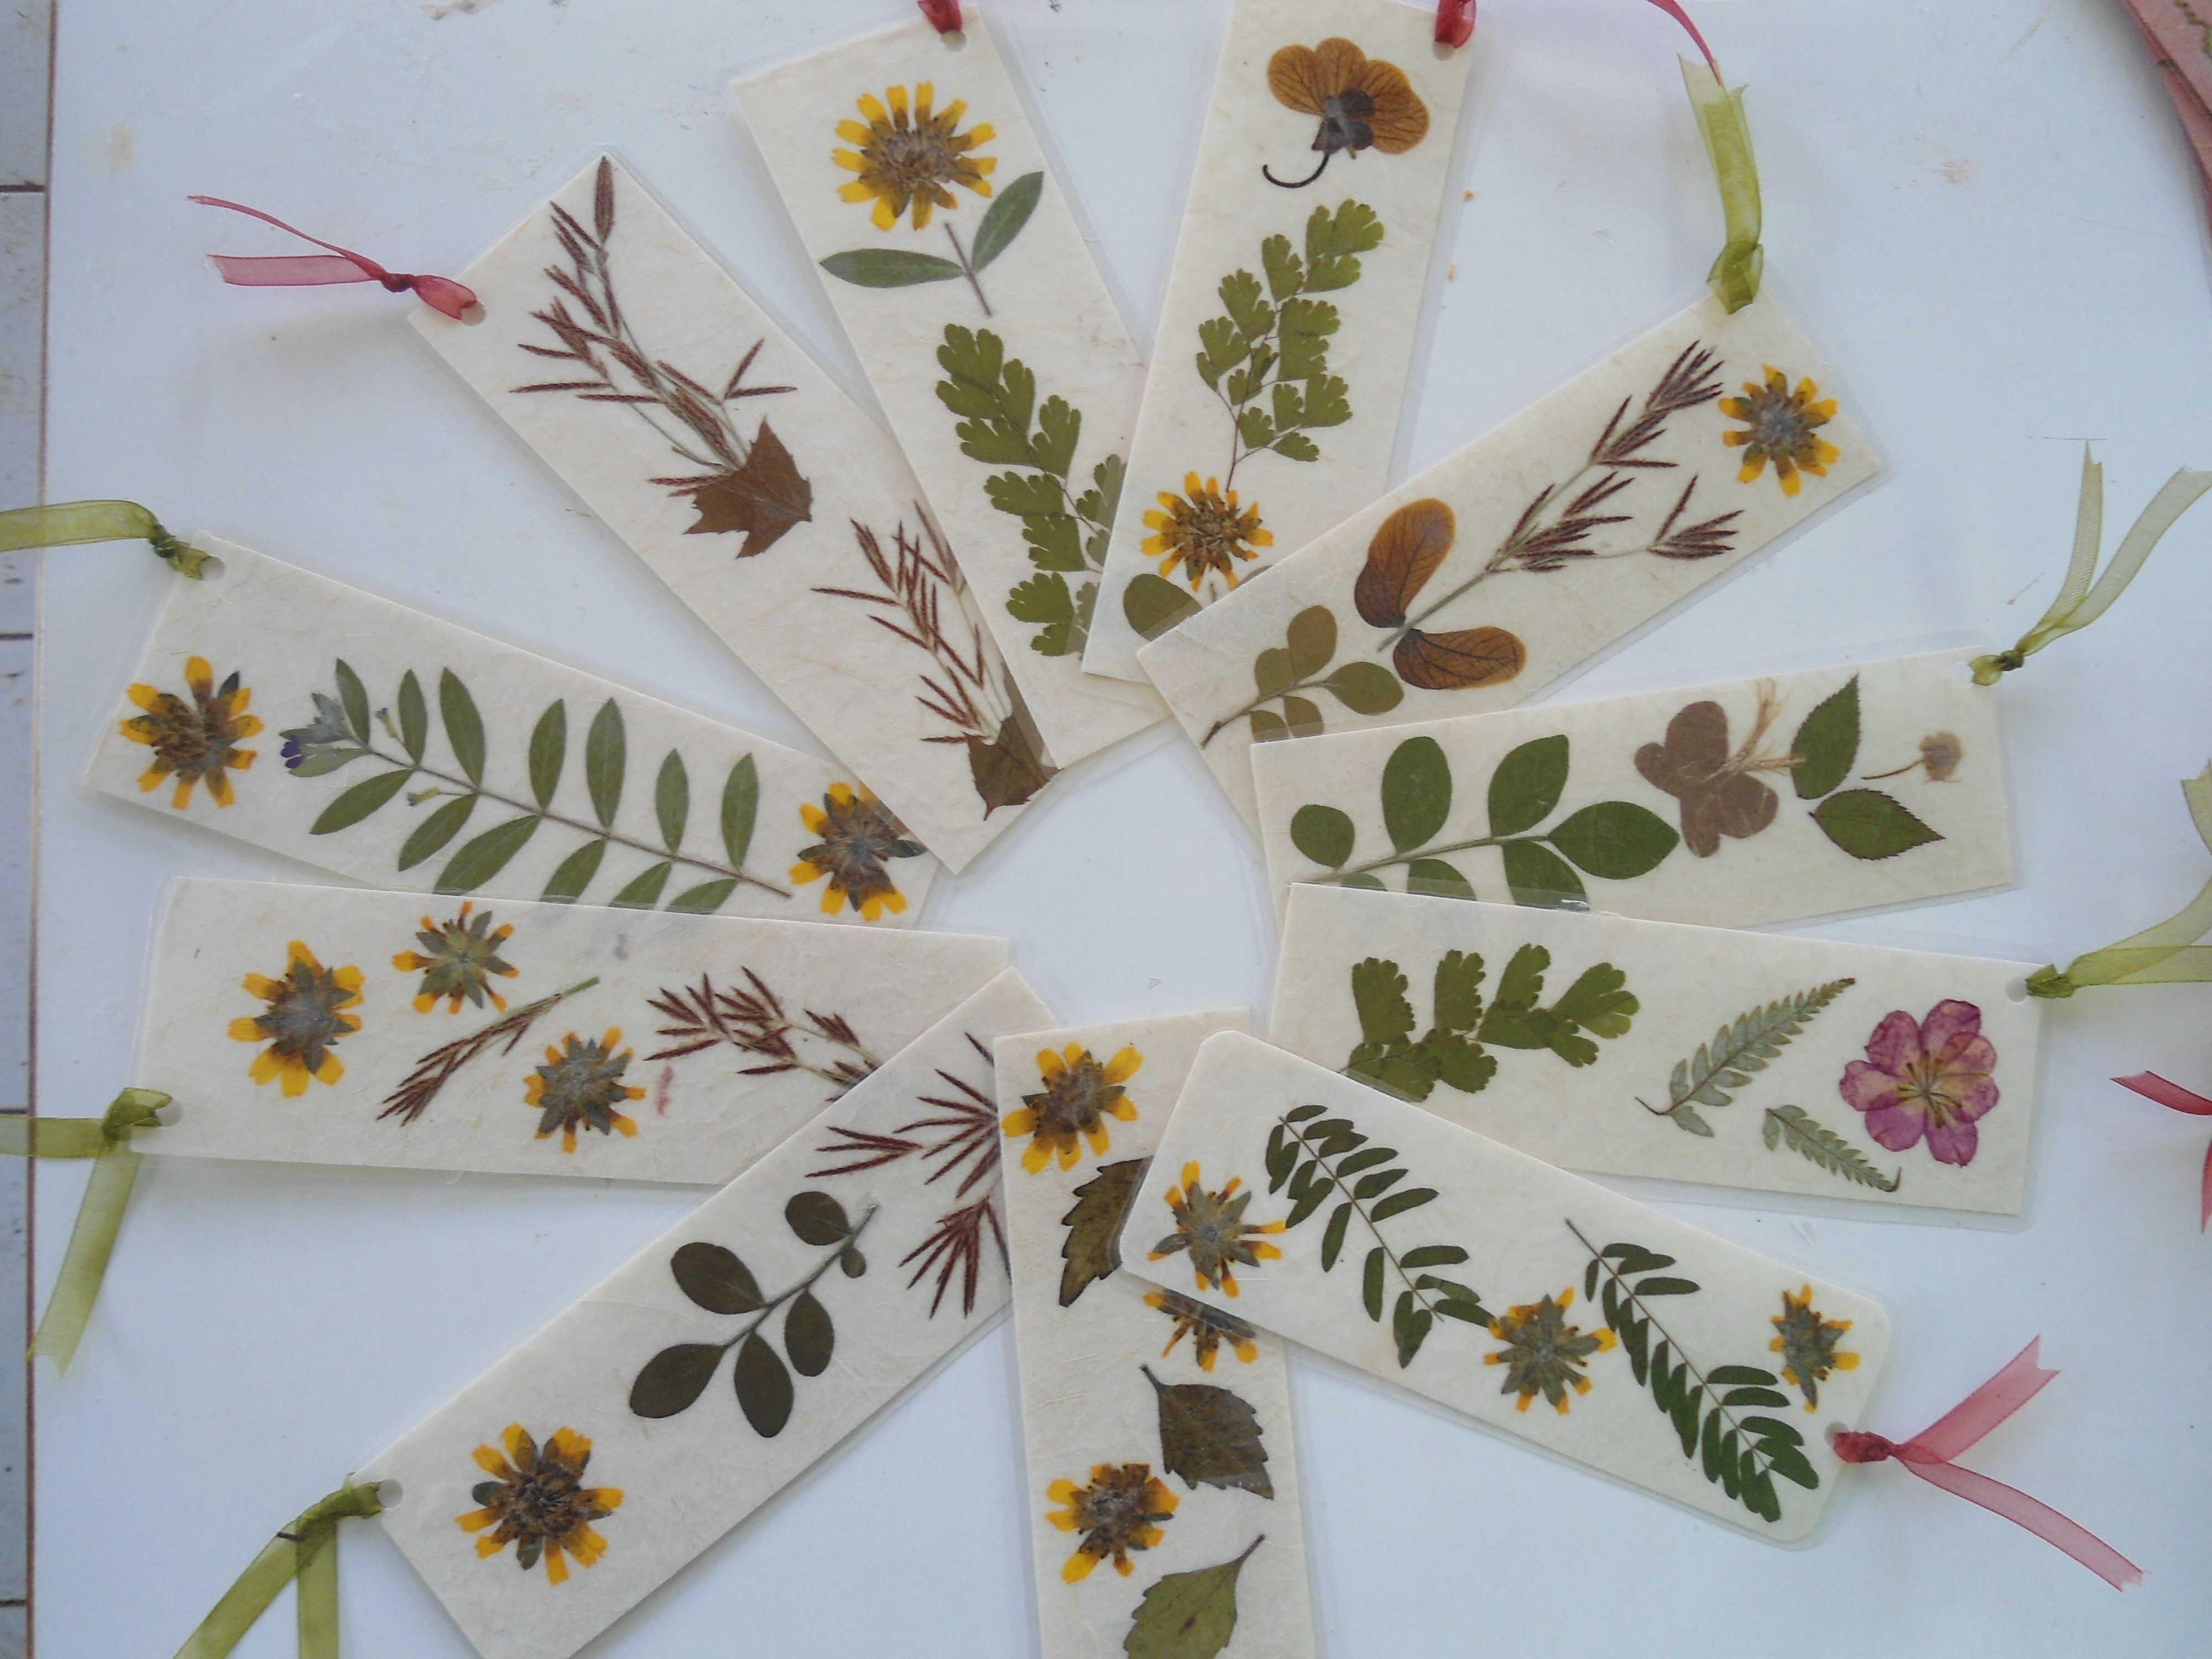 Book Mark Created From Herbarium Dried And Pressed Flower And Banana S Paper Flower Bookmark Pressed Flower Art Pressed Flowers